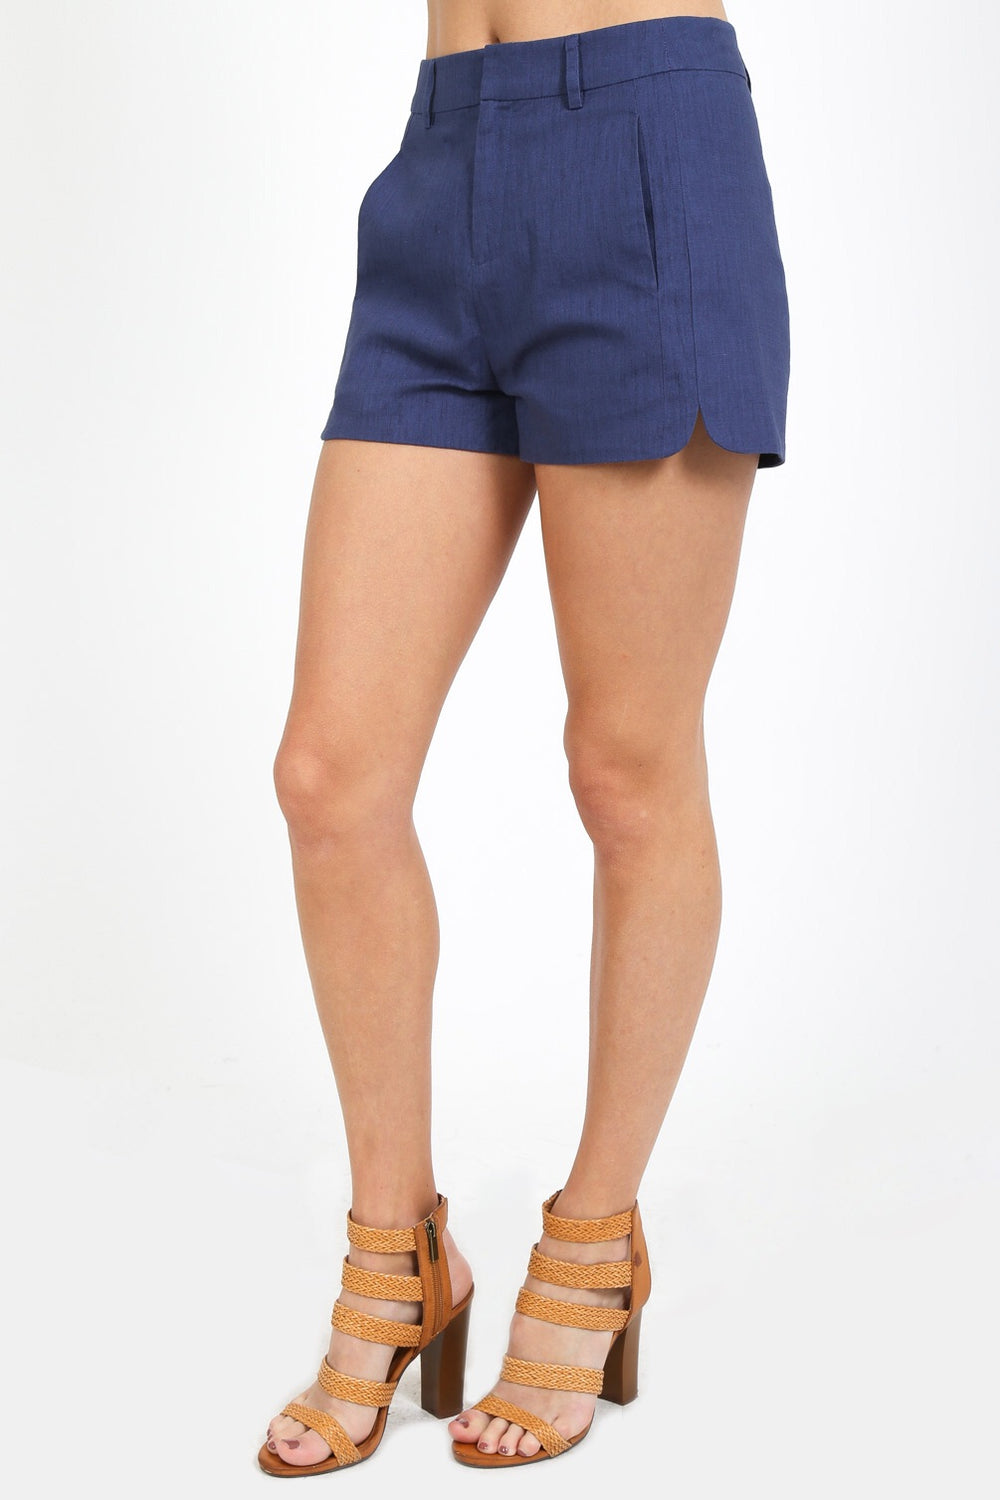 Dress Me Up Navy Shorts